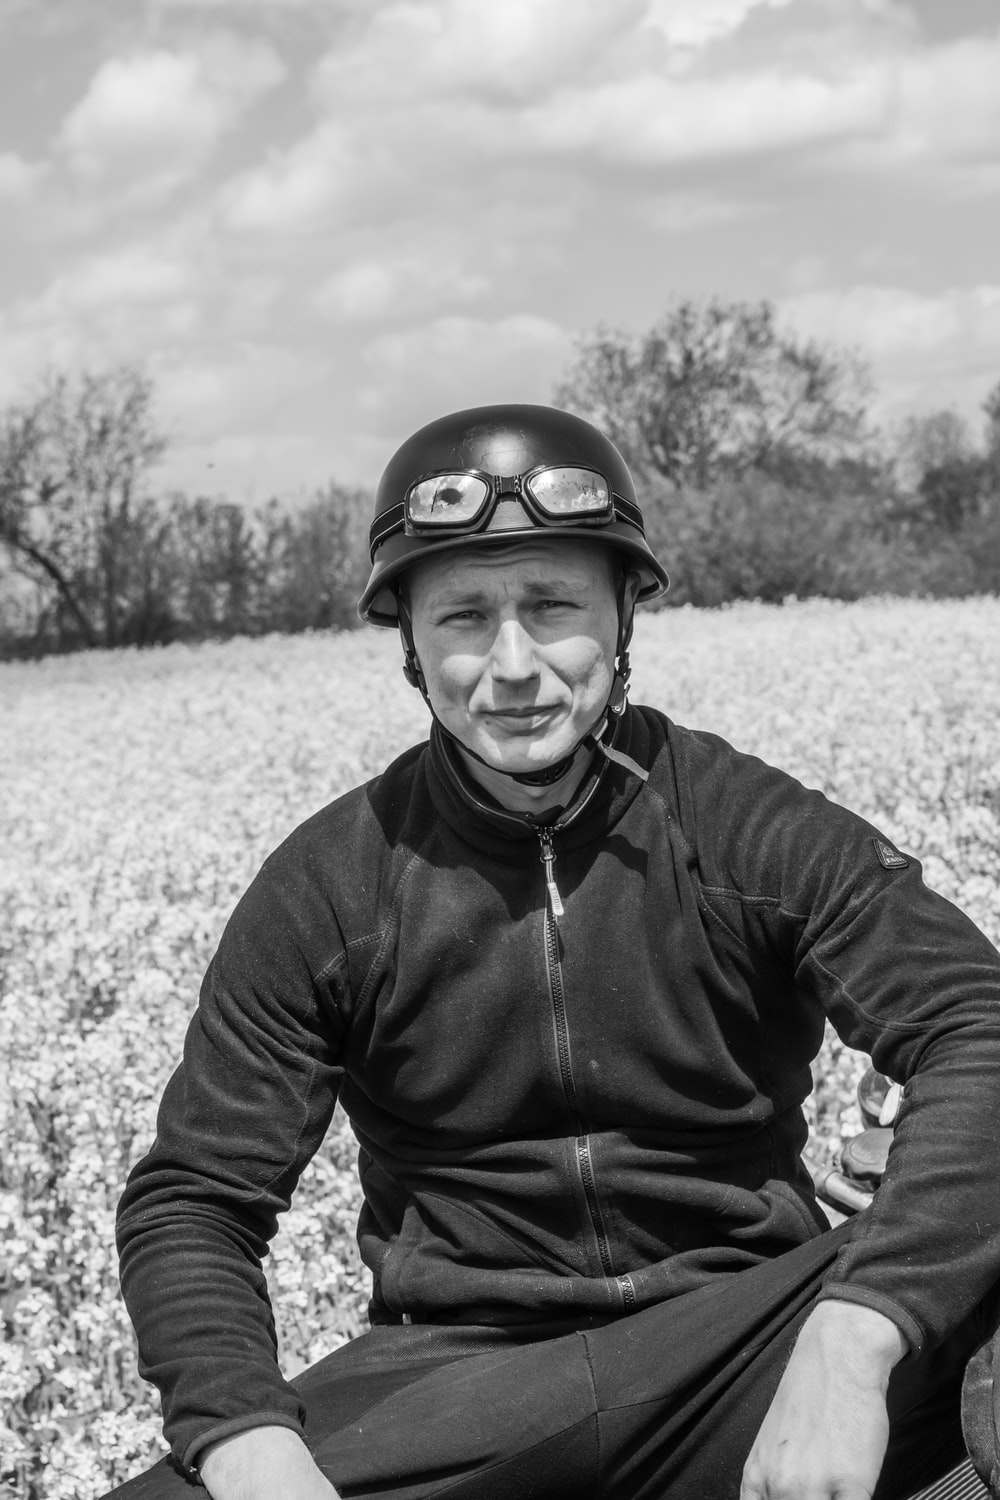 man in black jacket and helmet in grayscale photography